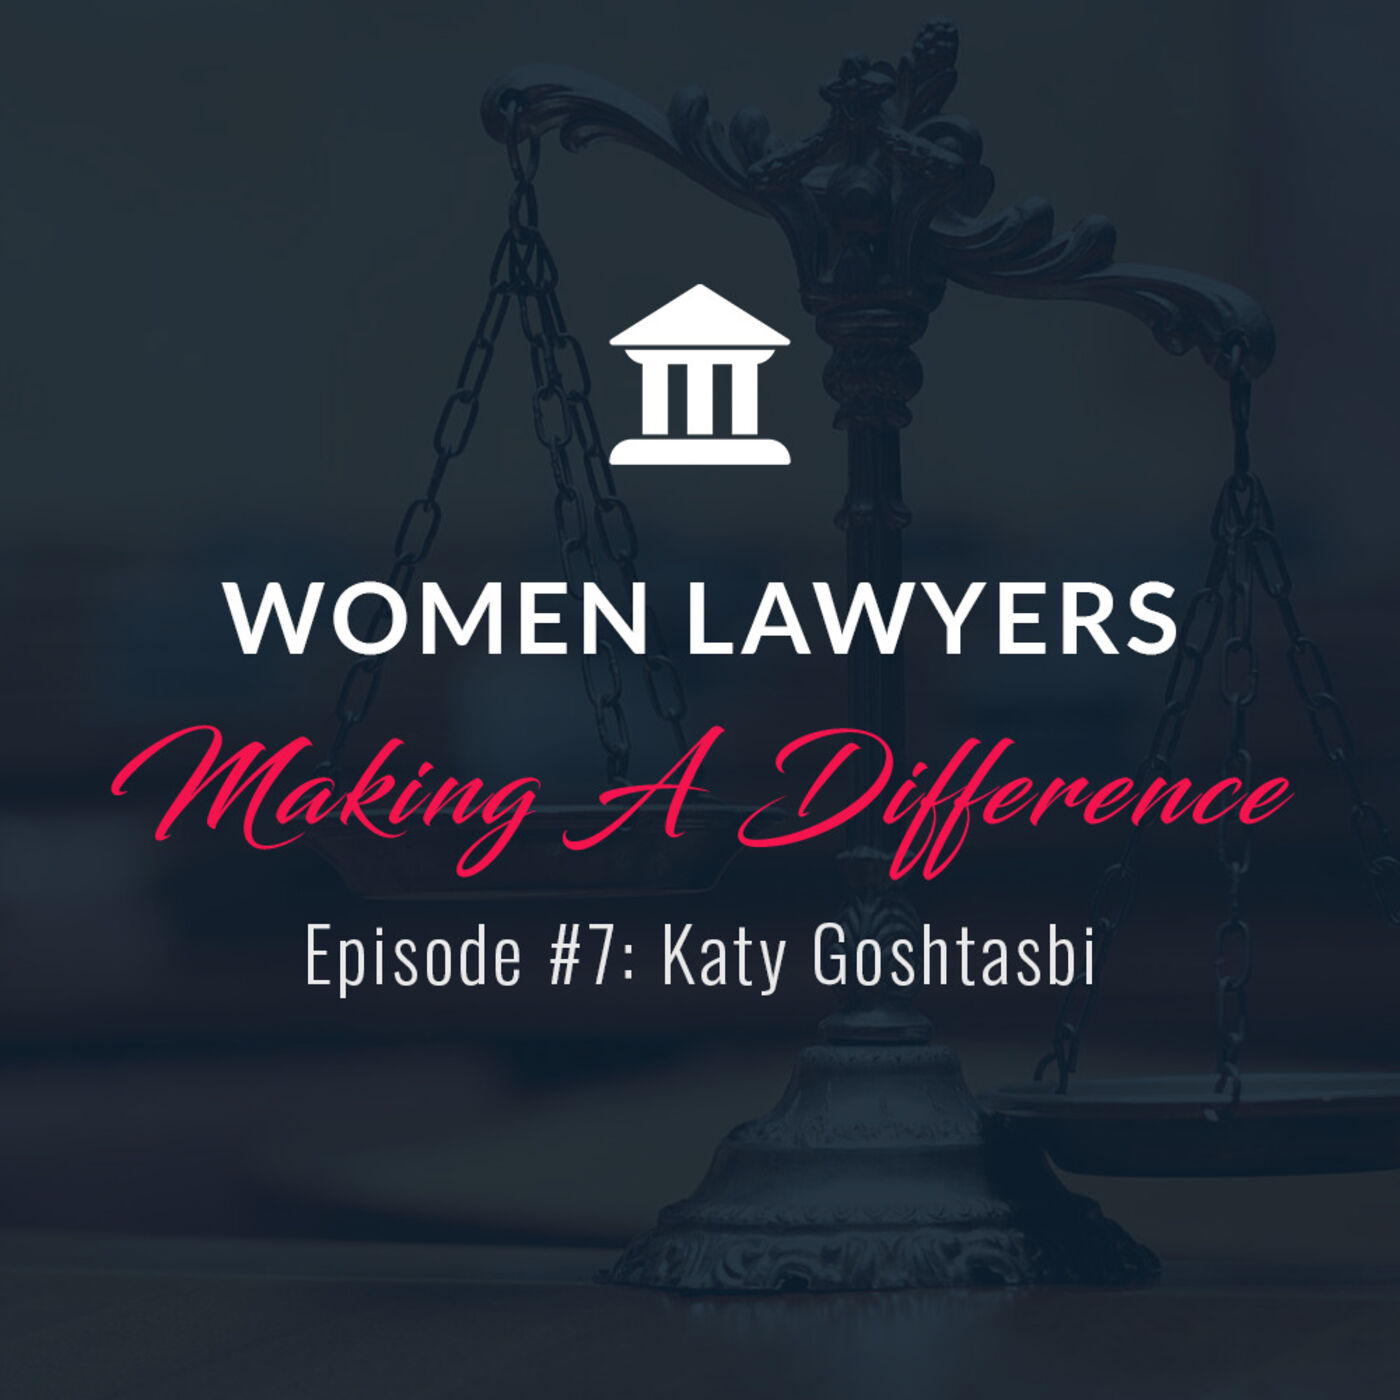 Women Lawyers Making a Difference: Stepping Out of Our Comfort Zone With Our Brand